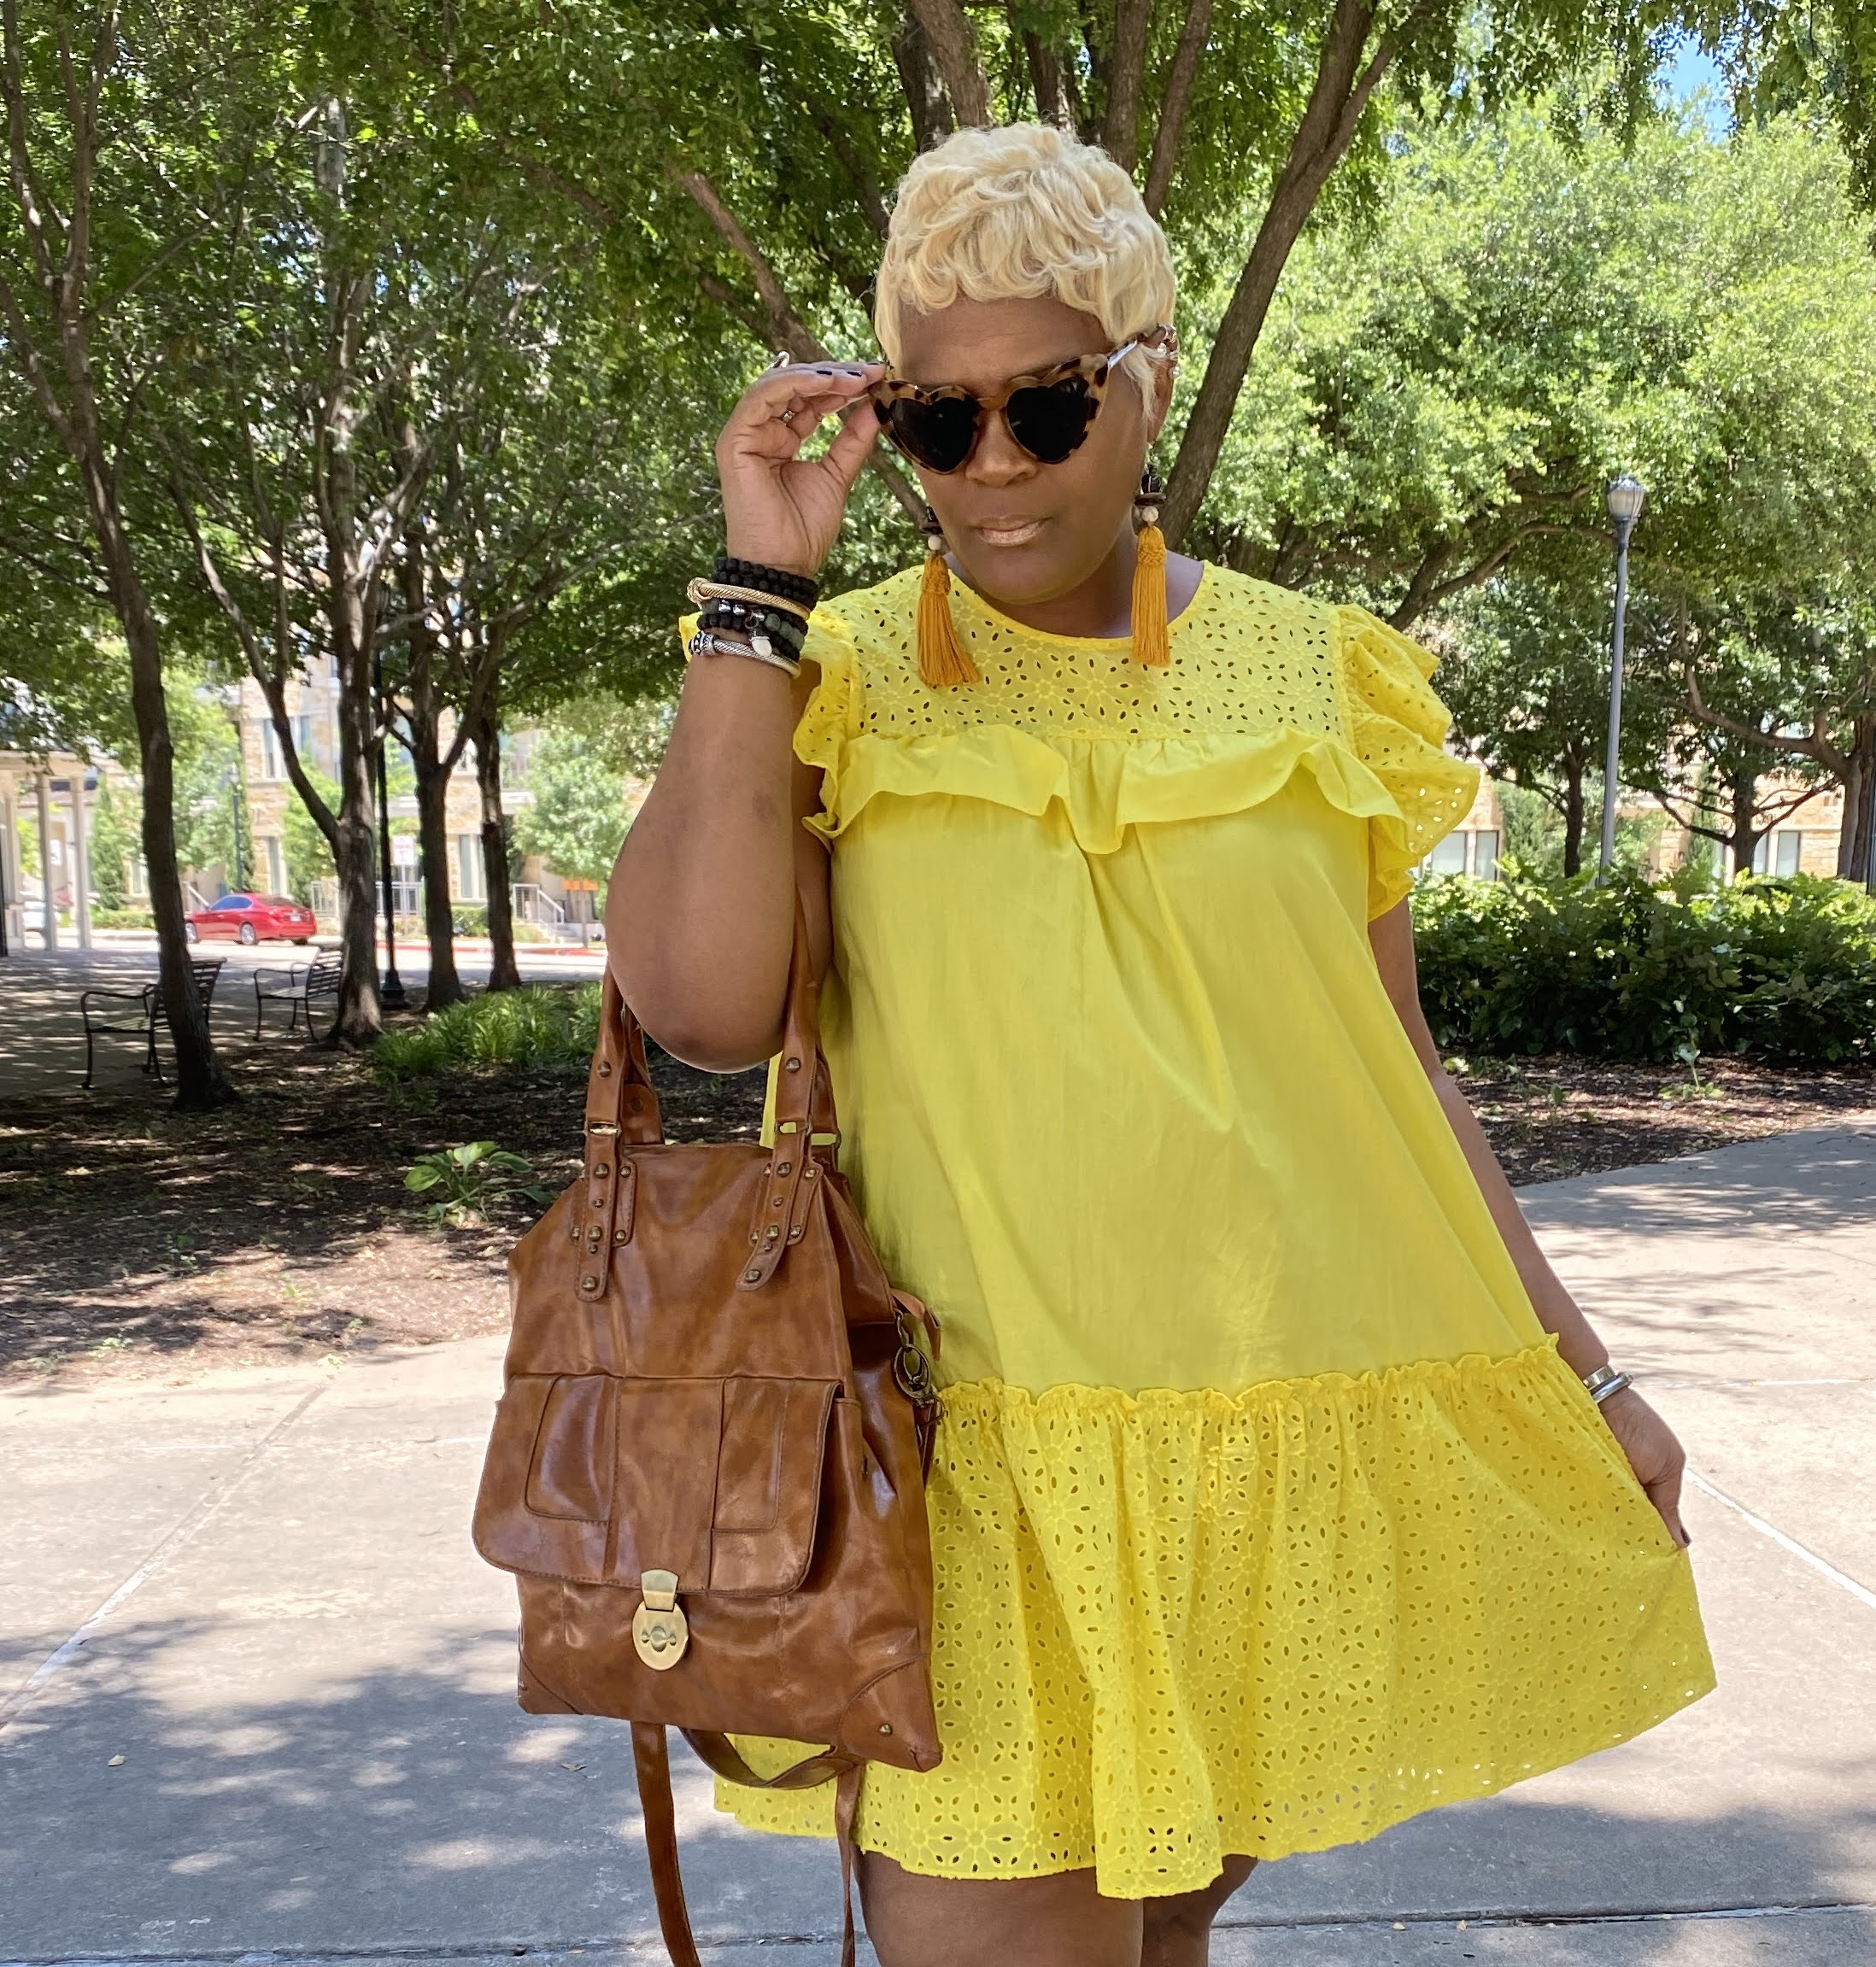 A Yellow Midi Dress That Looks A Mess On Me: Please Judge My Style!